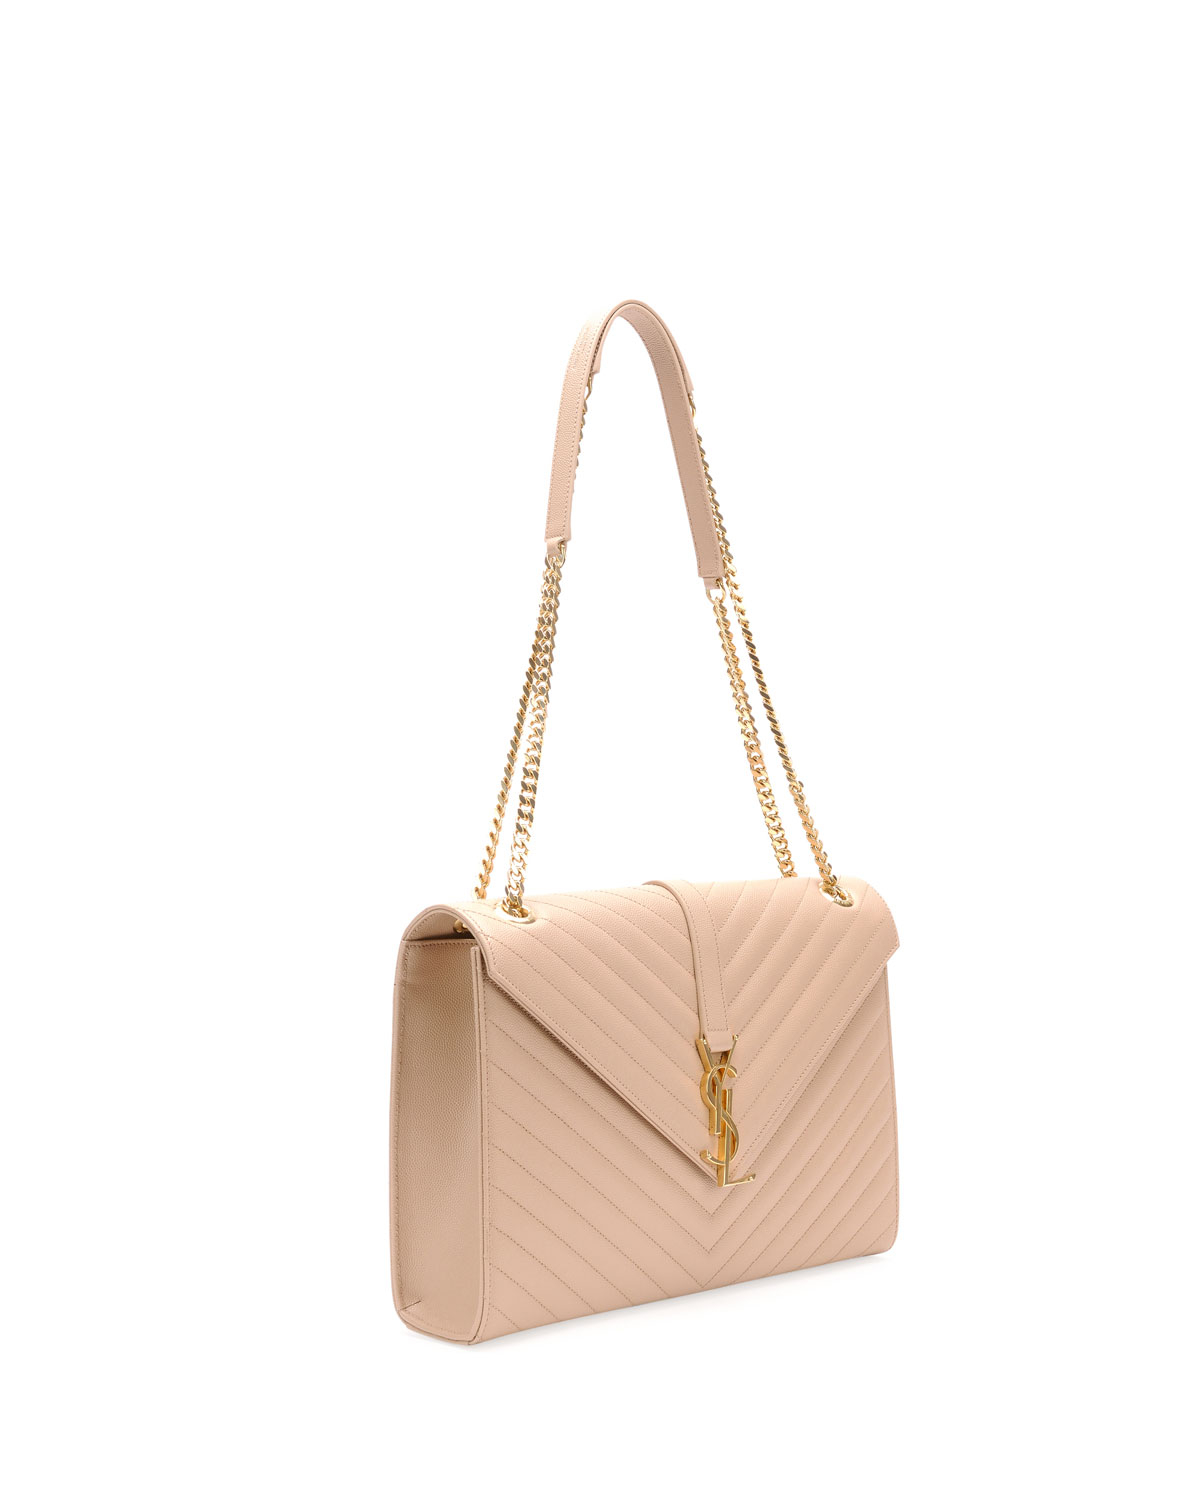 462b4dee02 Lyst - Saint Laurent Monogram Matelasse Shoulder Bag in Pink